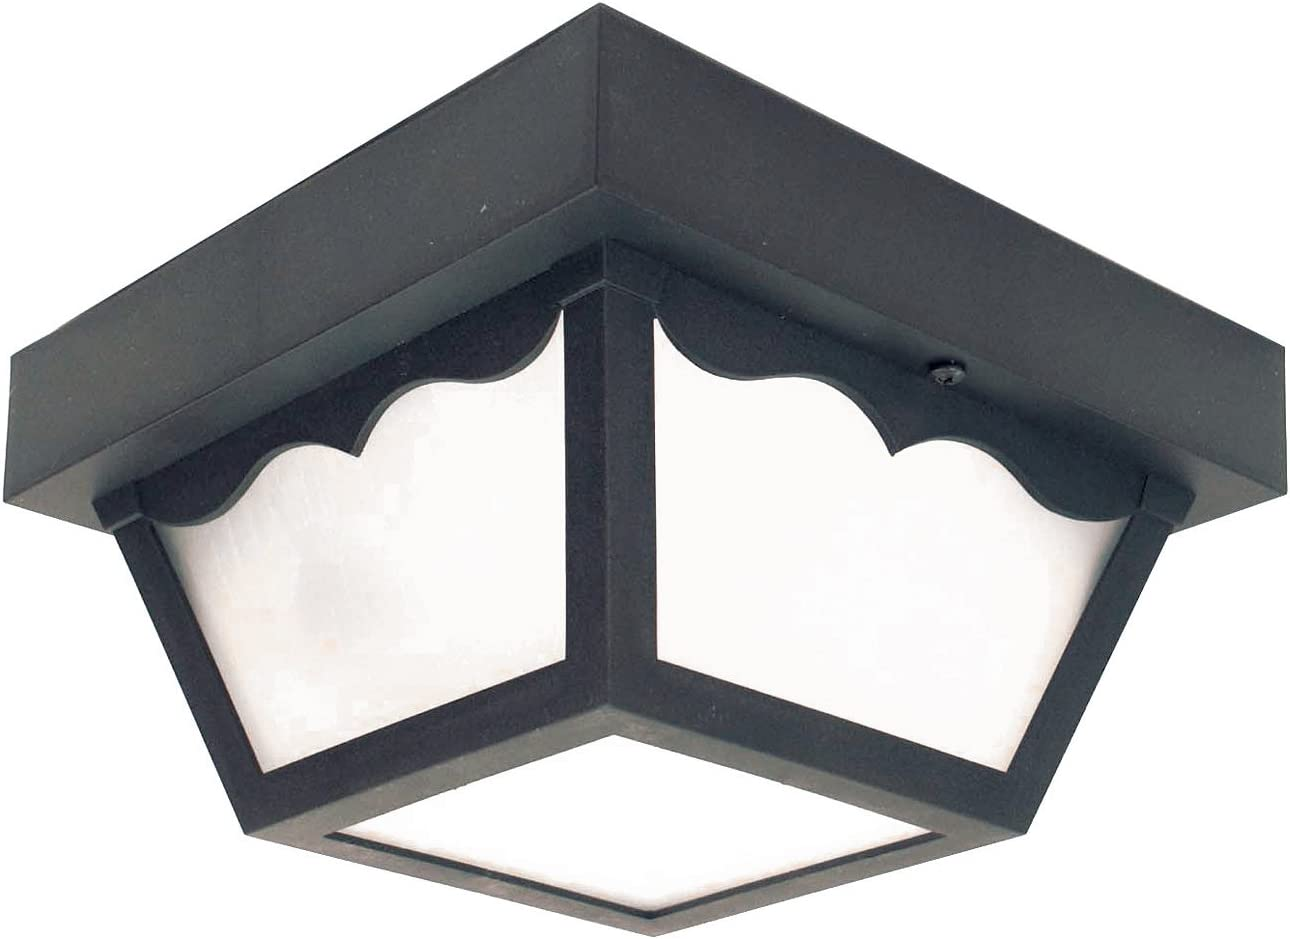 Sunlite 47234-SU DOD/CC/BK/FR/MED Decorative Outdoor Century Collection Polycarbonate Fixture, Black Finish, Frosted Lens